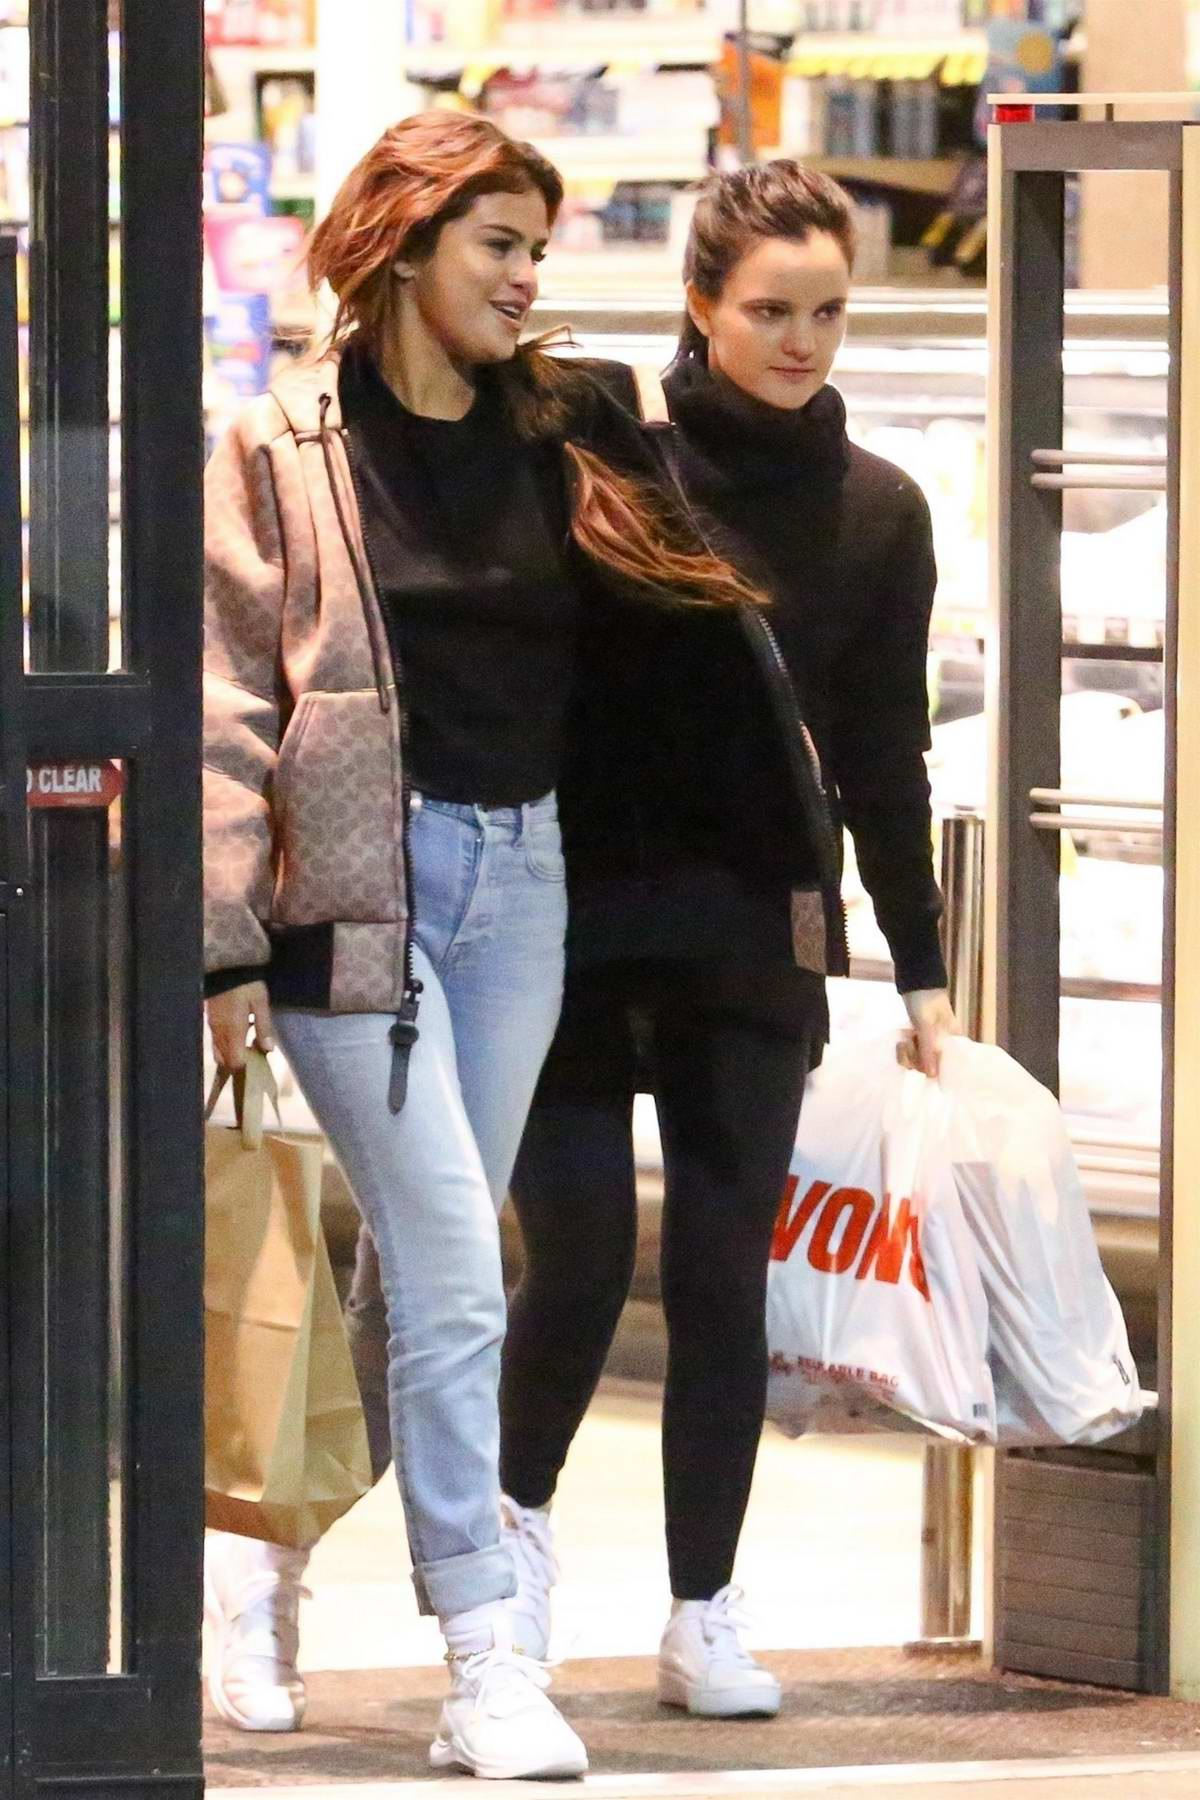 Selena Gomez shops for some groceries at Vons supermarket in Los Angeles